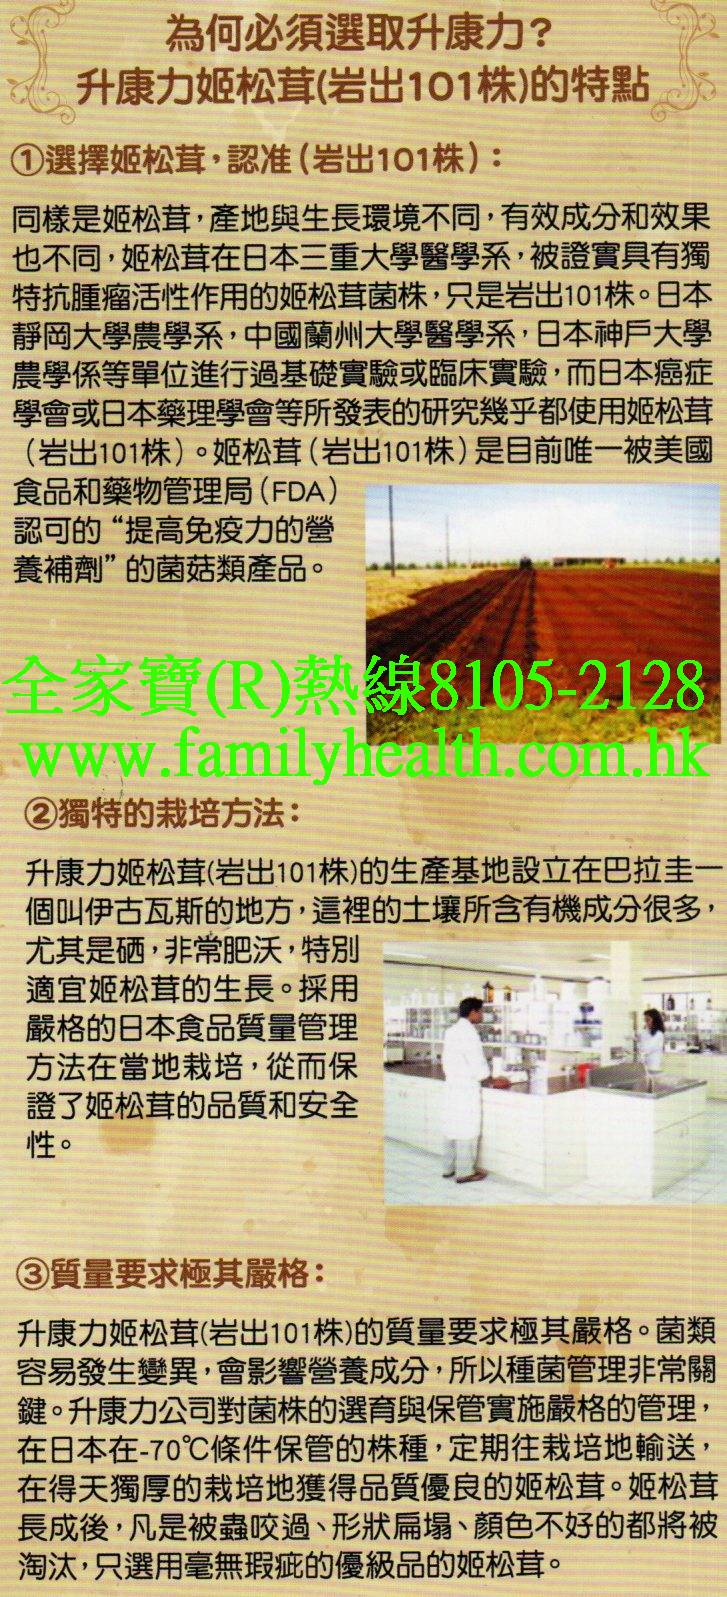 http://www.familyhealth.com.hk/files/full/1036_2.jpg